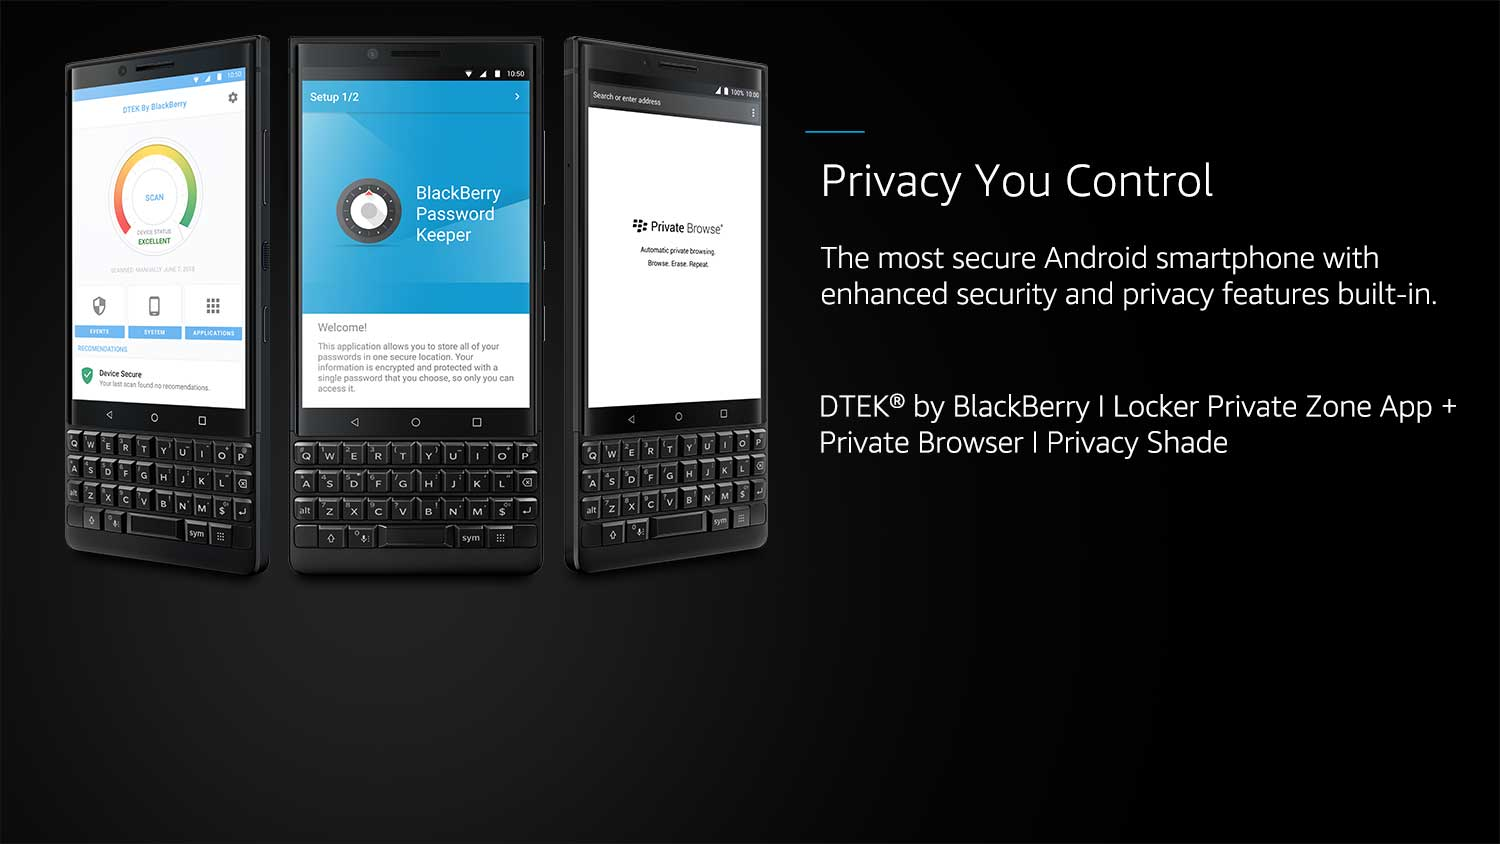 Blackberry Key2: Blackberry Key2 Specifications, Features at Amazon in